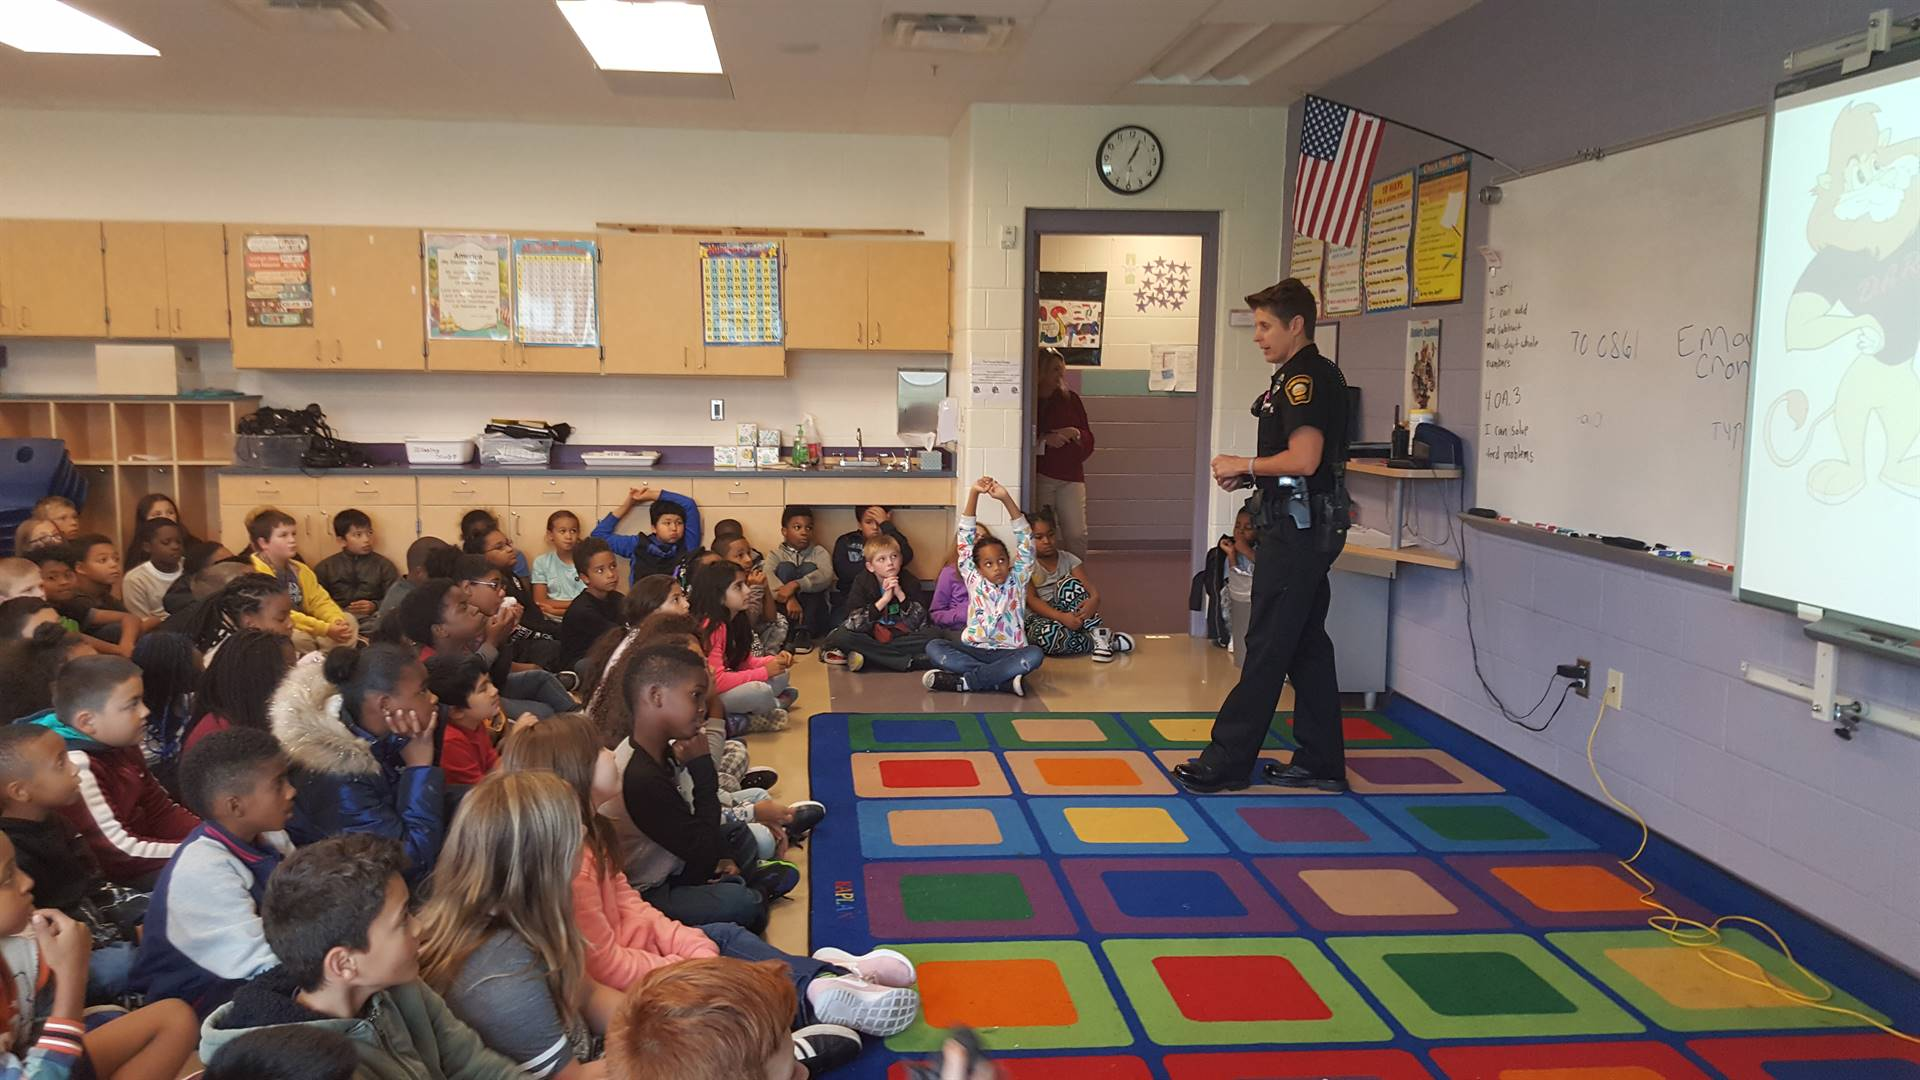 Officer Fulton Speaks To The 4th Grade About Bullying